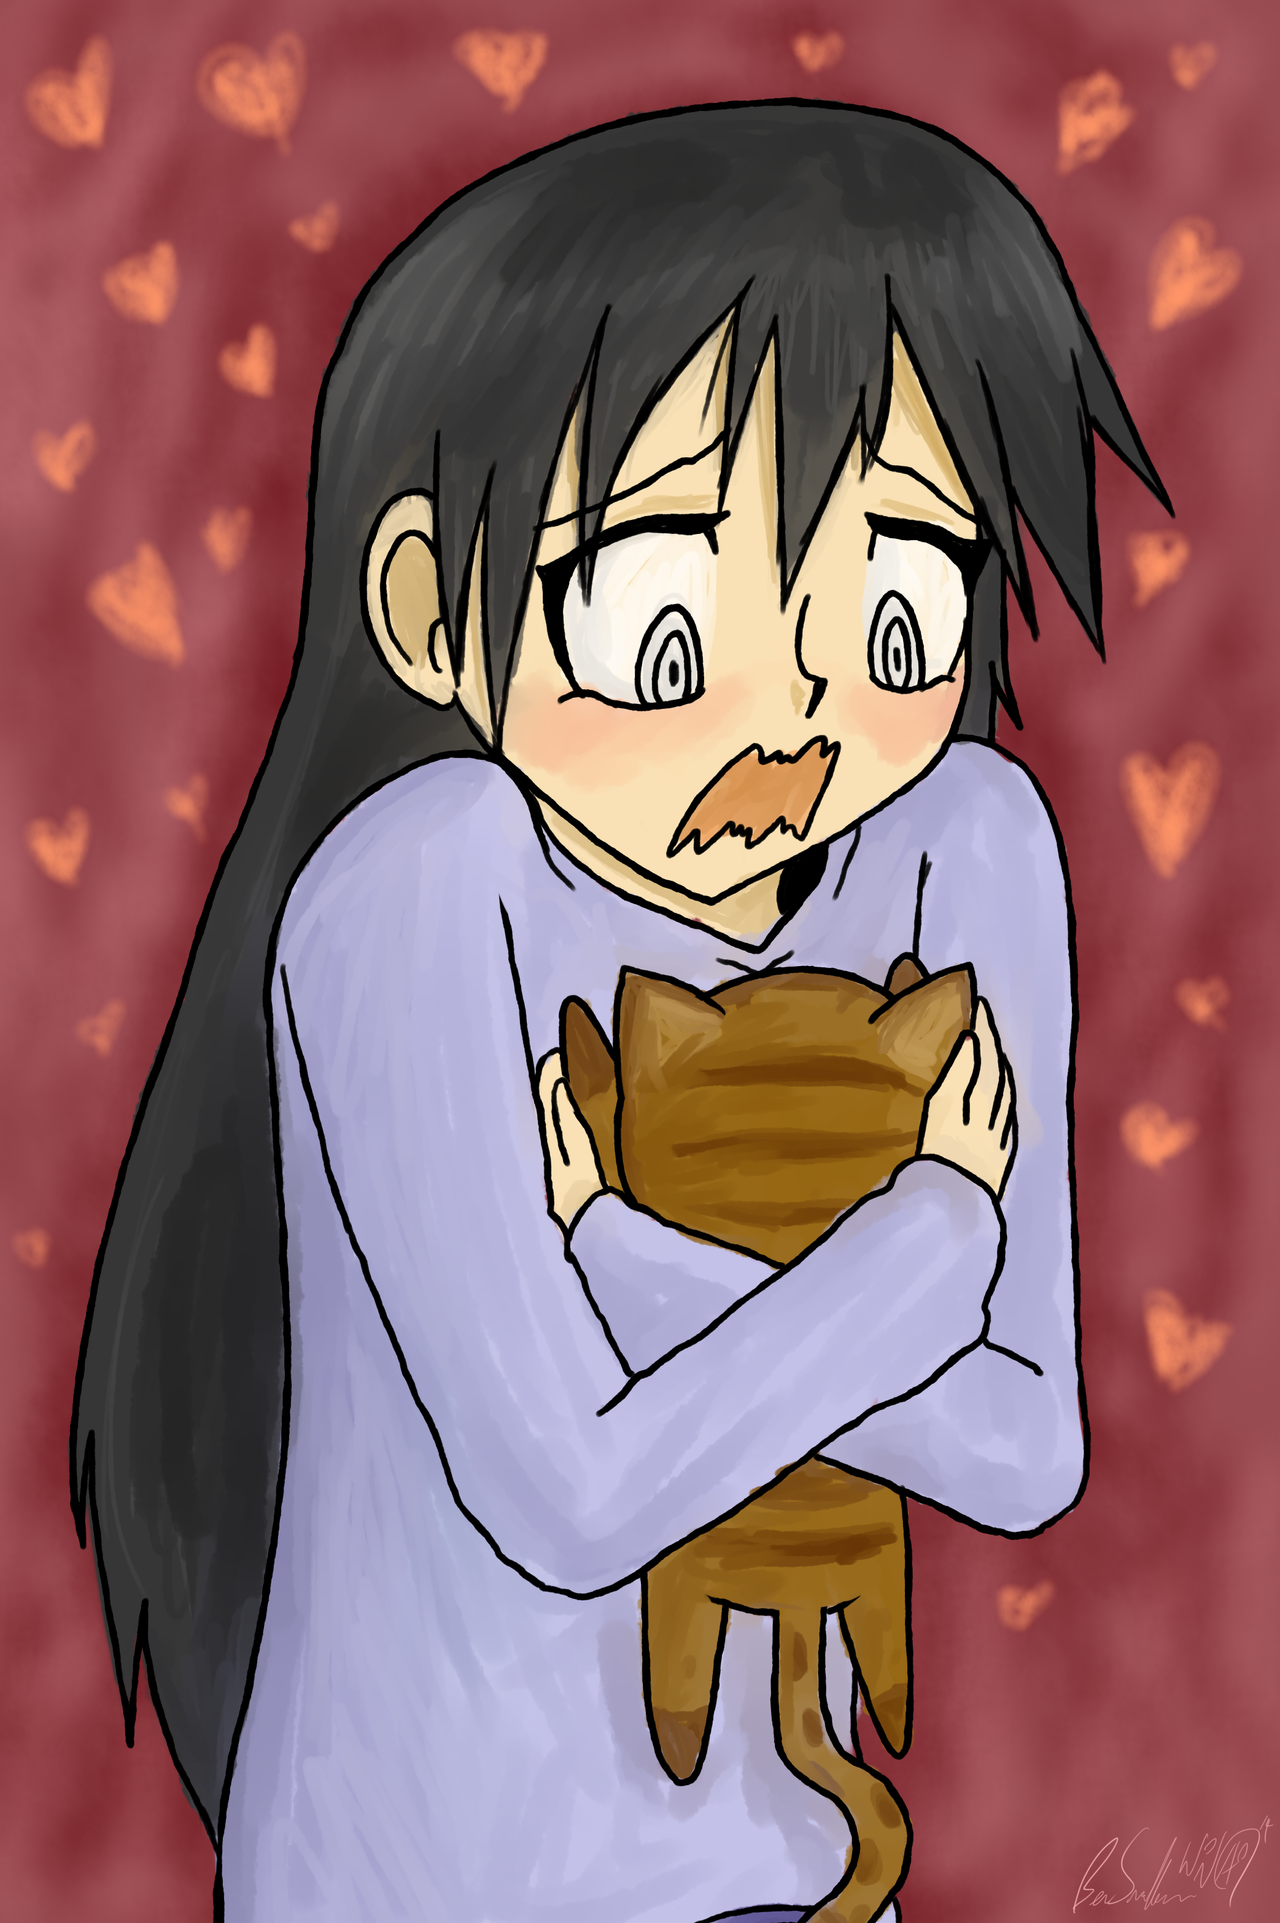 Sakaki-san is too darn cute by Wonchop